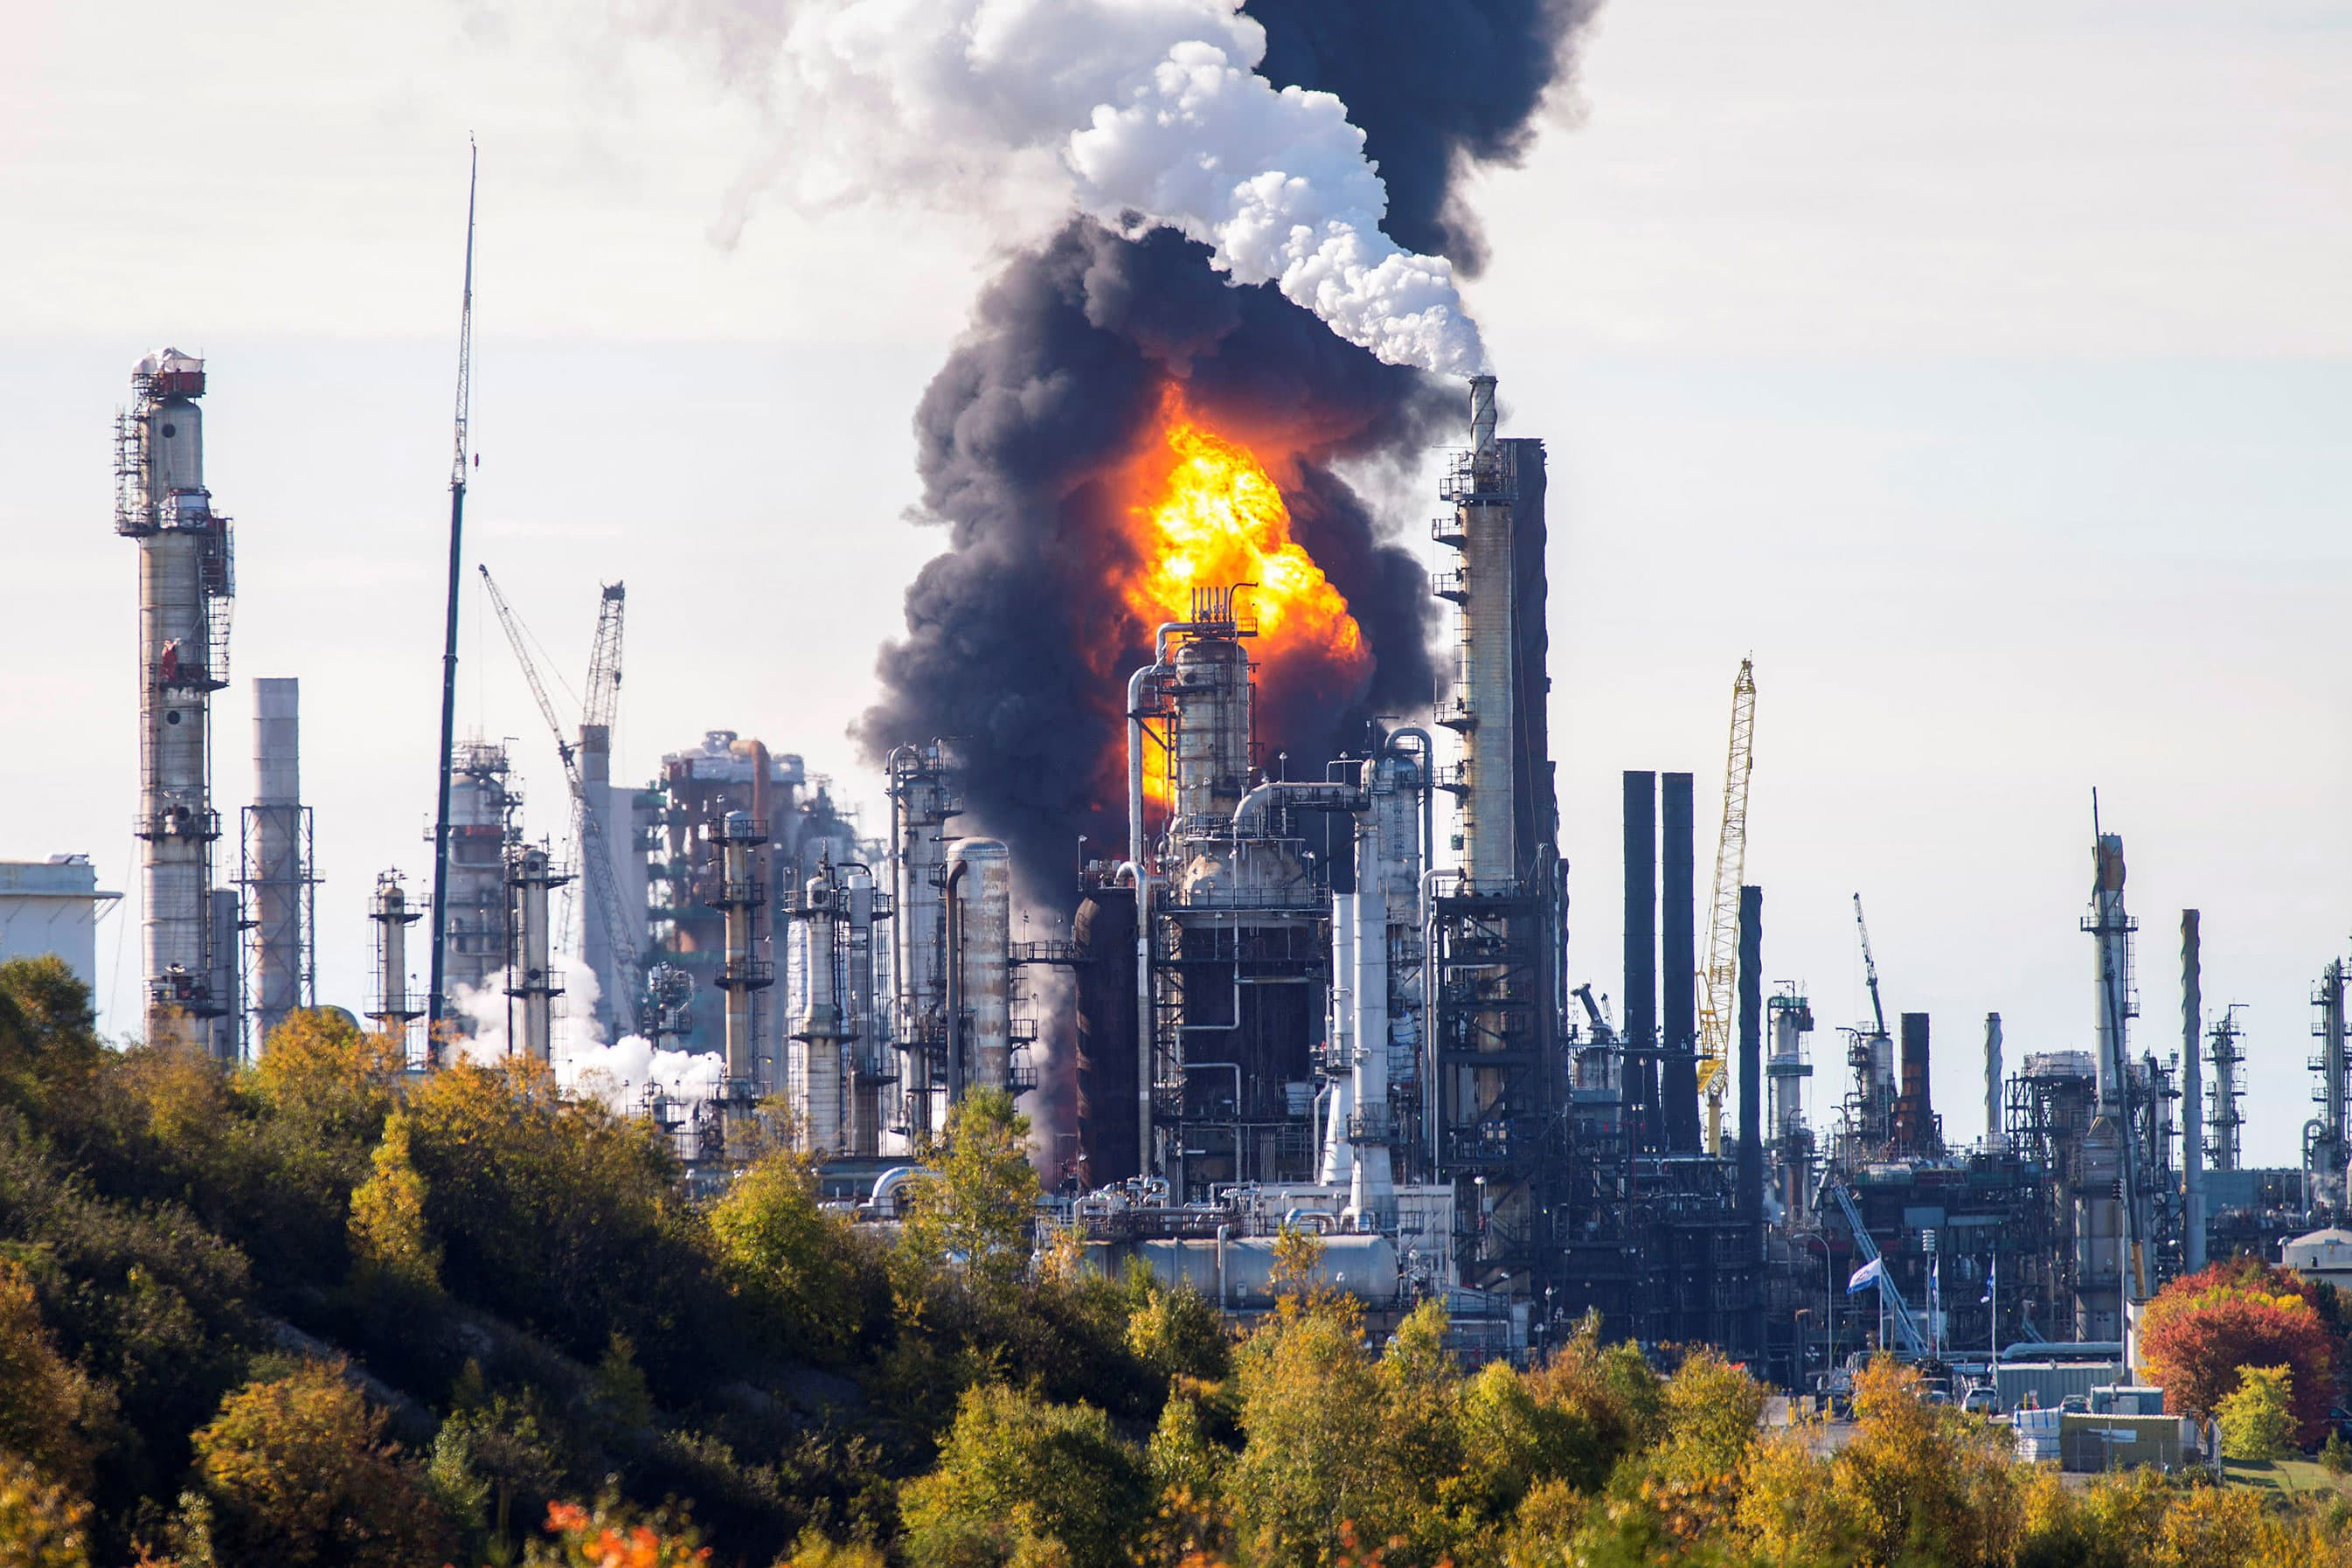 Explosion reported at Irving Oil's Saint John refinery